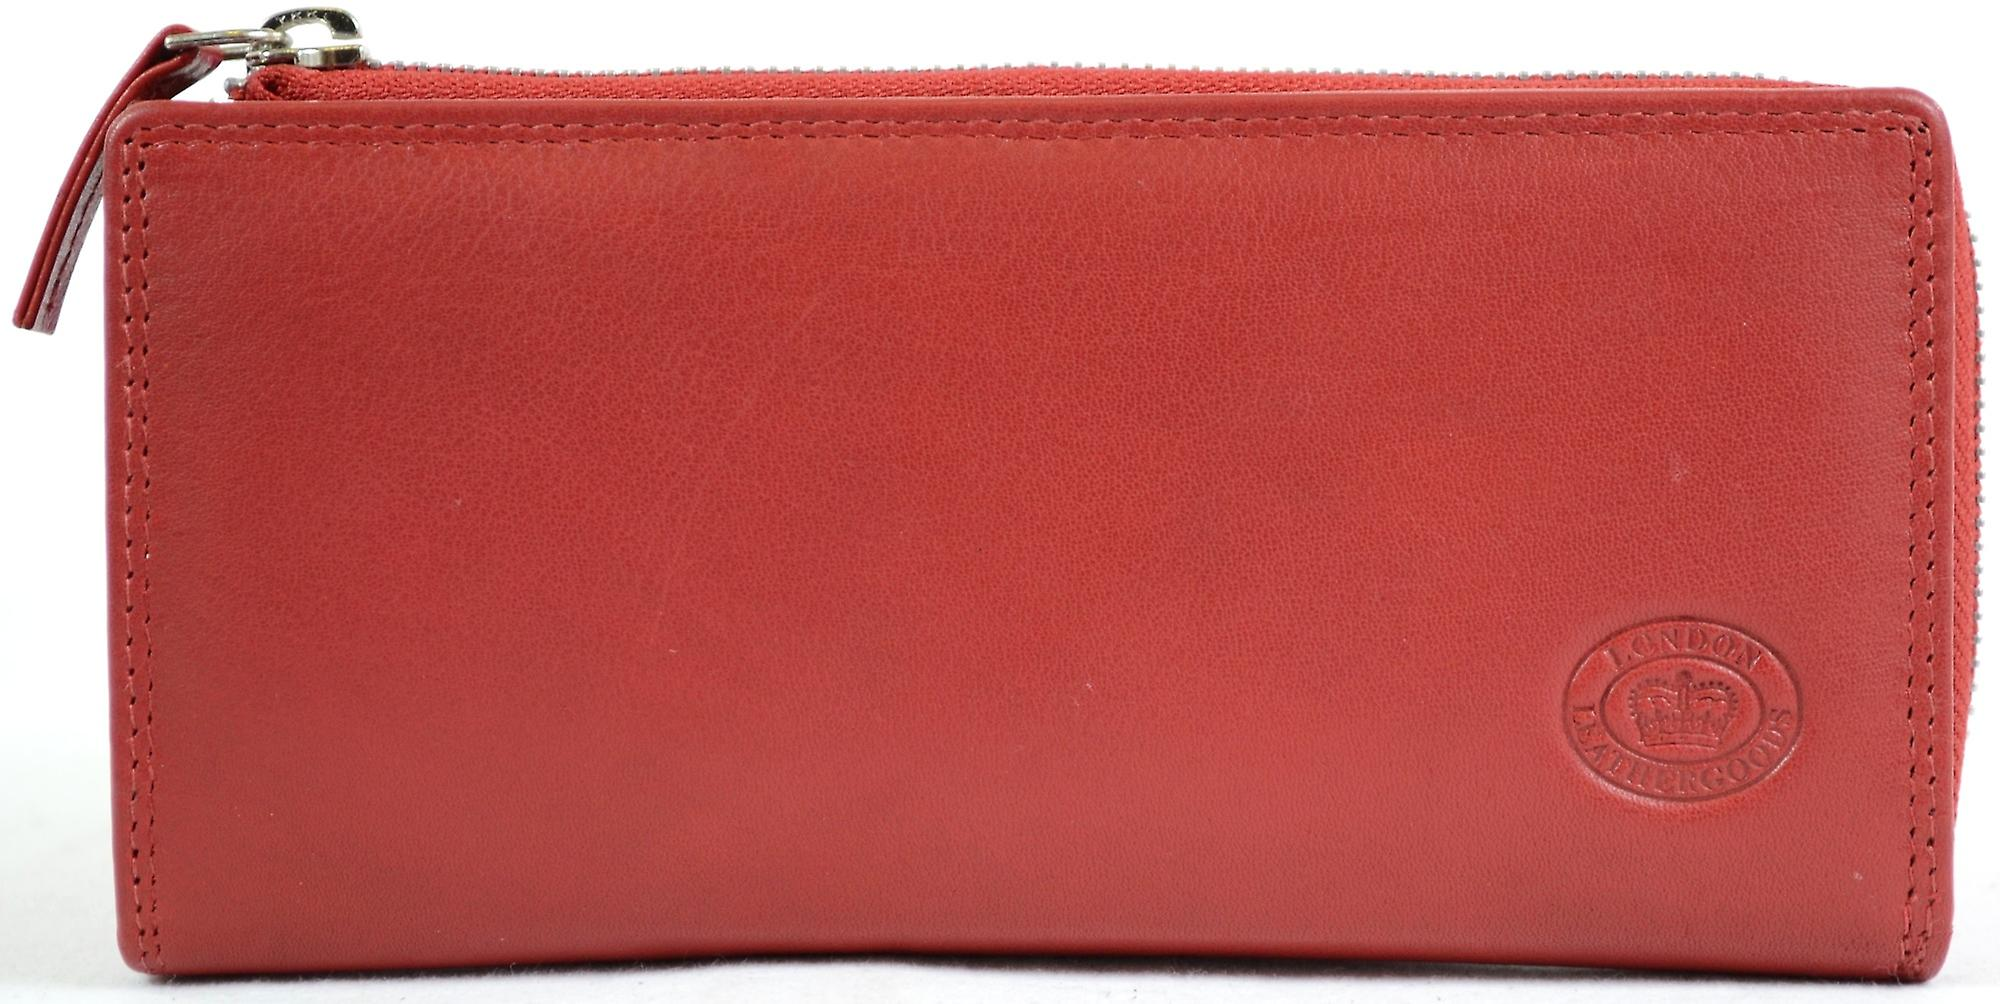 767a36dbb8a Ladies Large Soft Nappa Leather Matinee Purse with Multiple Credit Card  Slots and Pockets ( Red